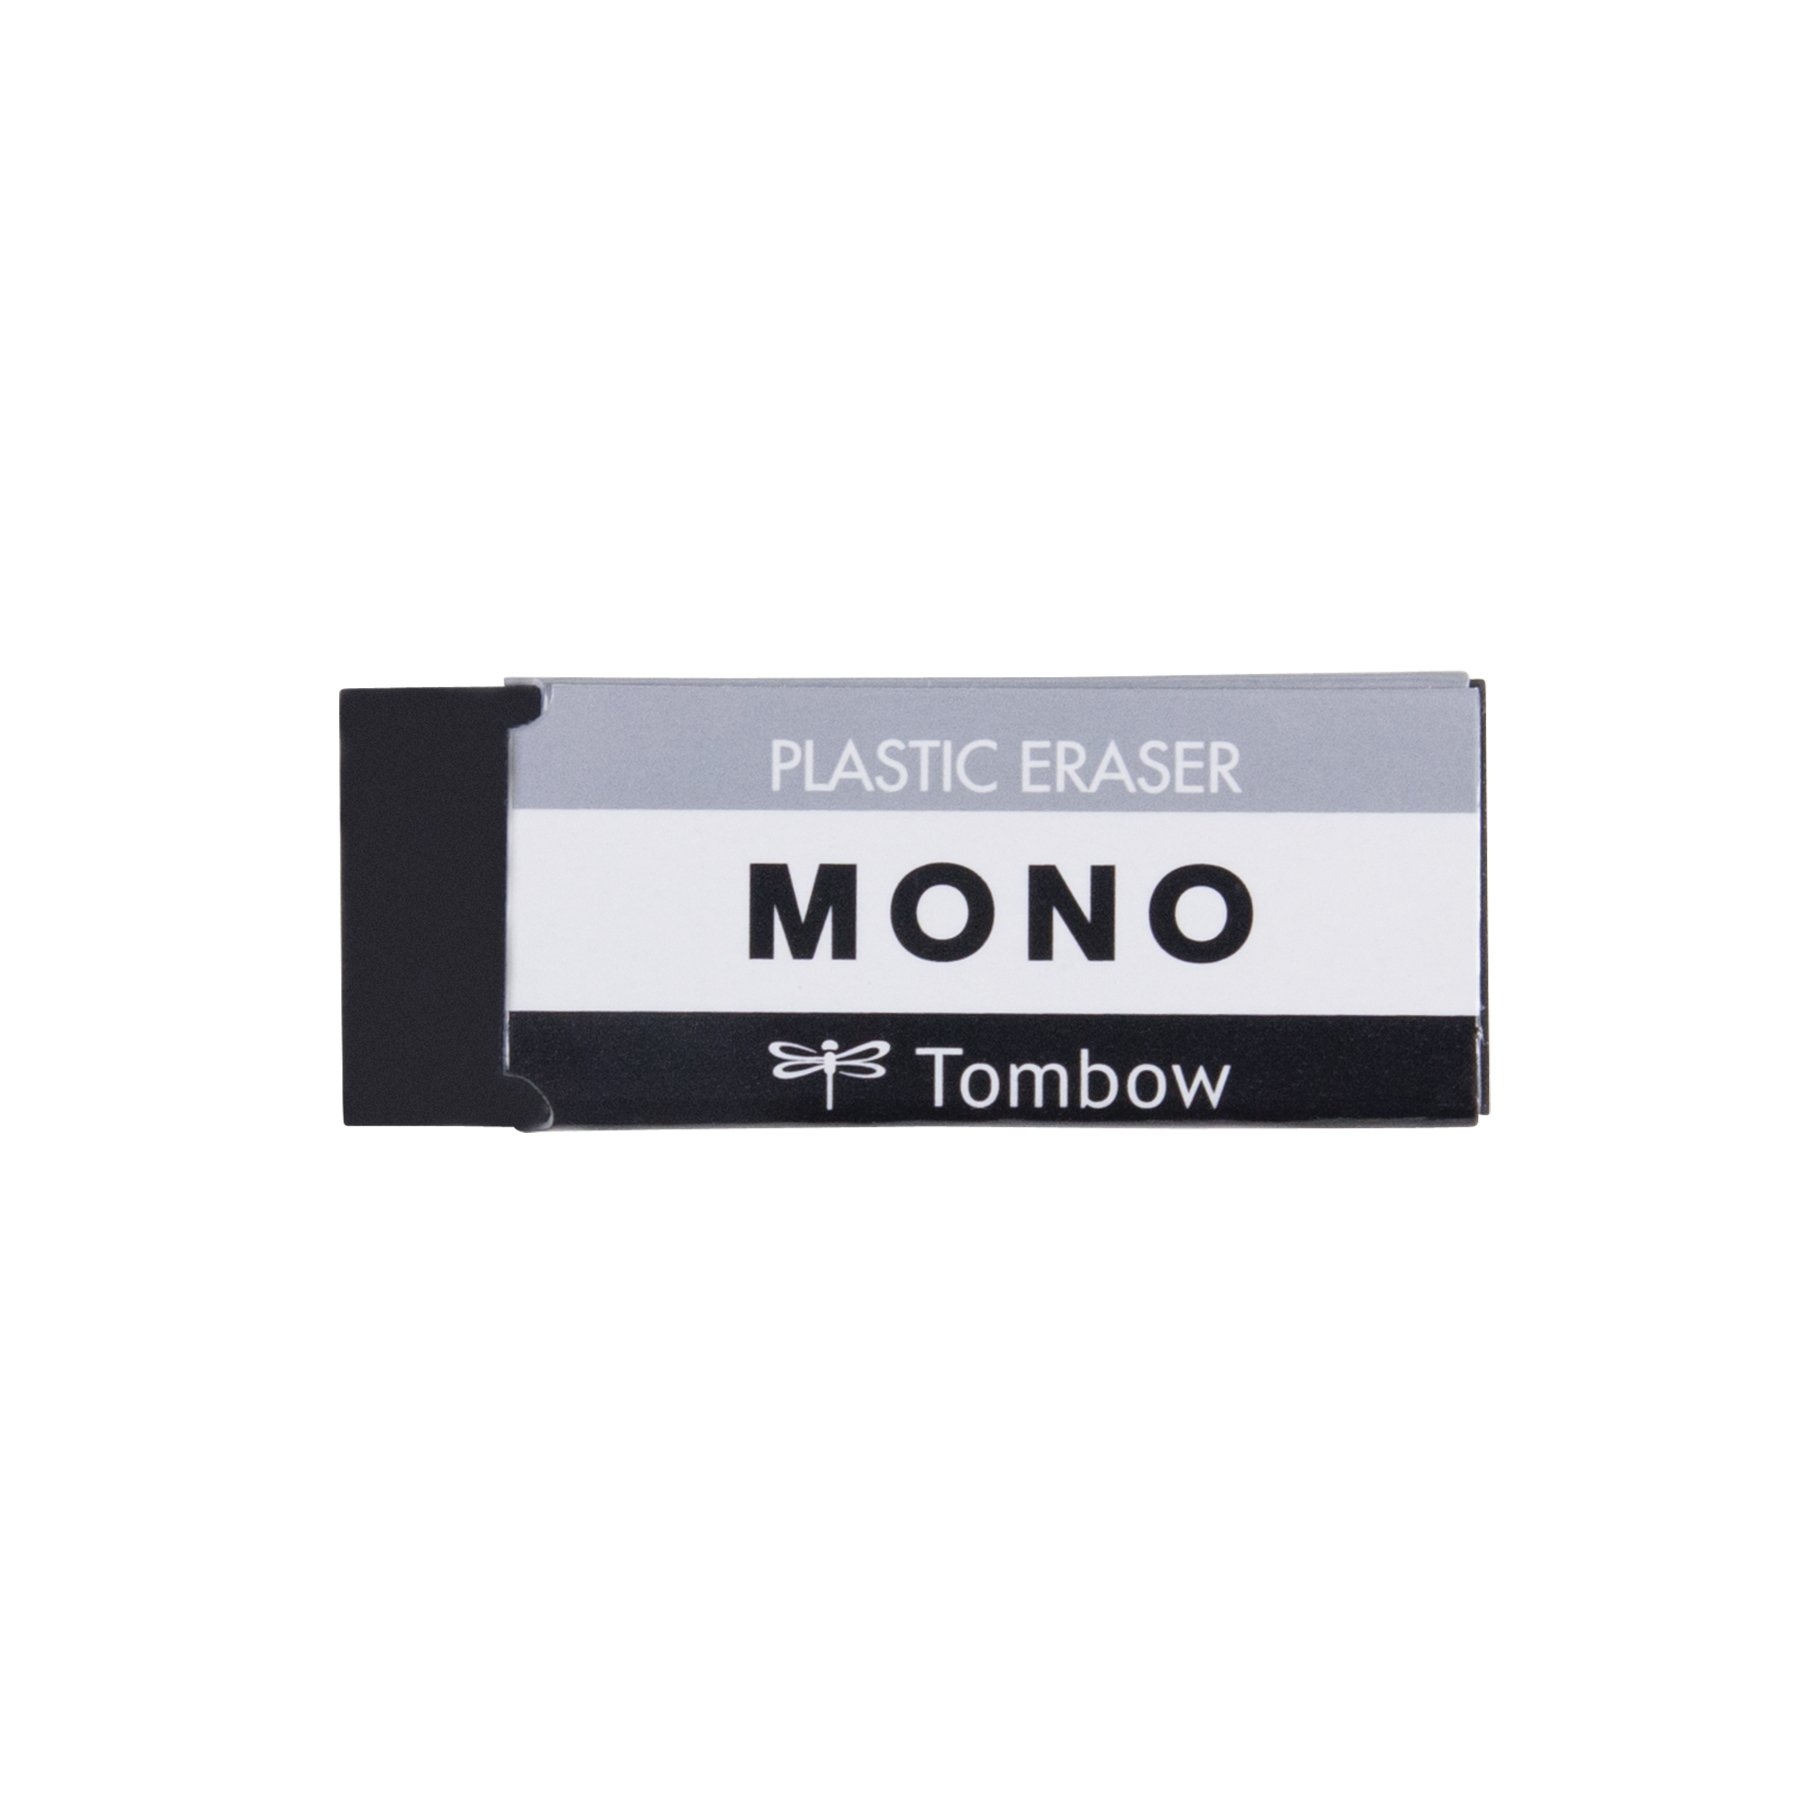 Tombow Mono Eraser, Black, Small, 40 PC Box, Pack, Piece